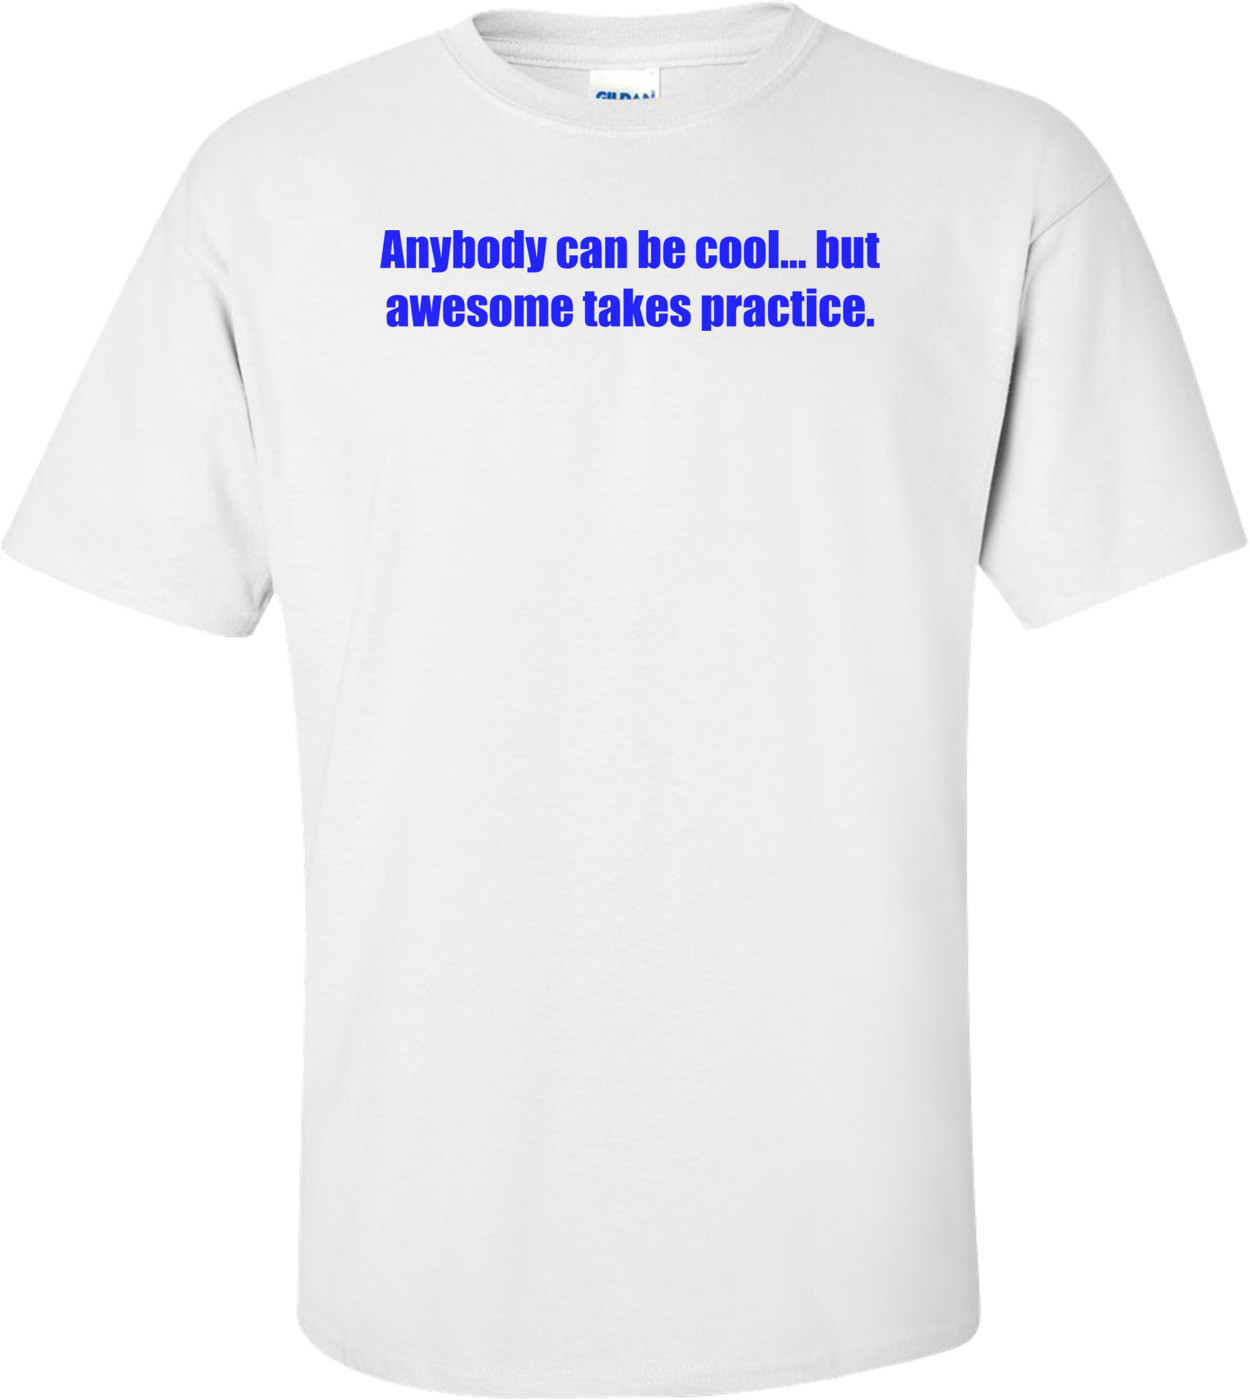 Anybody can be cool... but awesome takes practice. Shirt